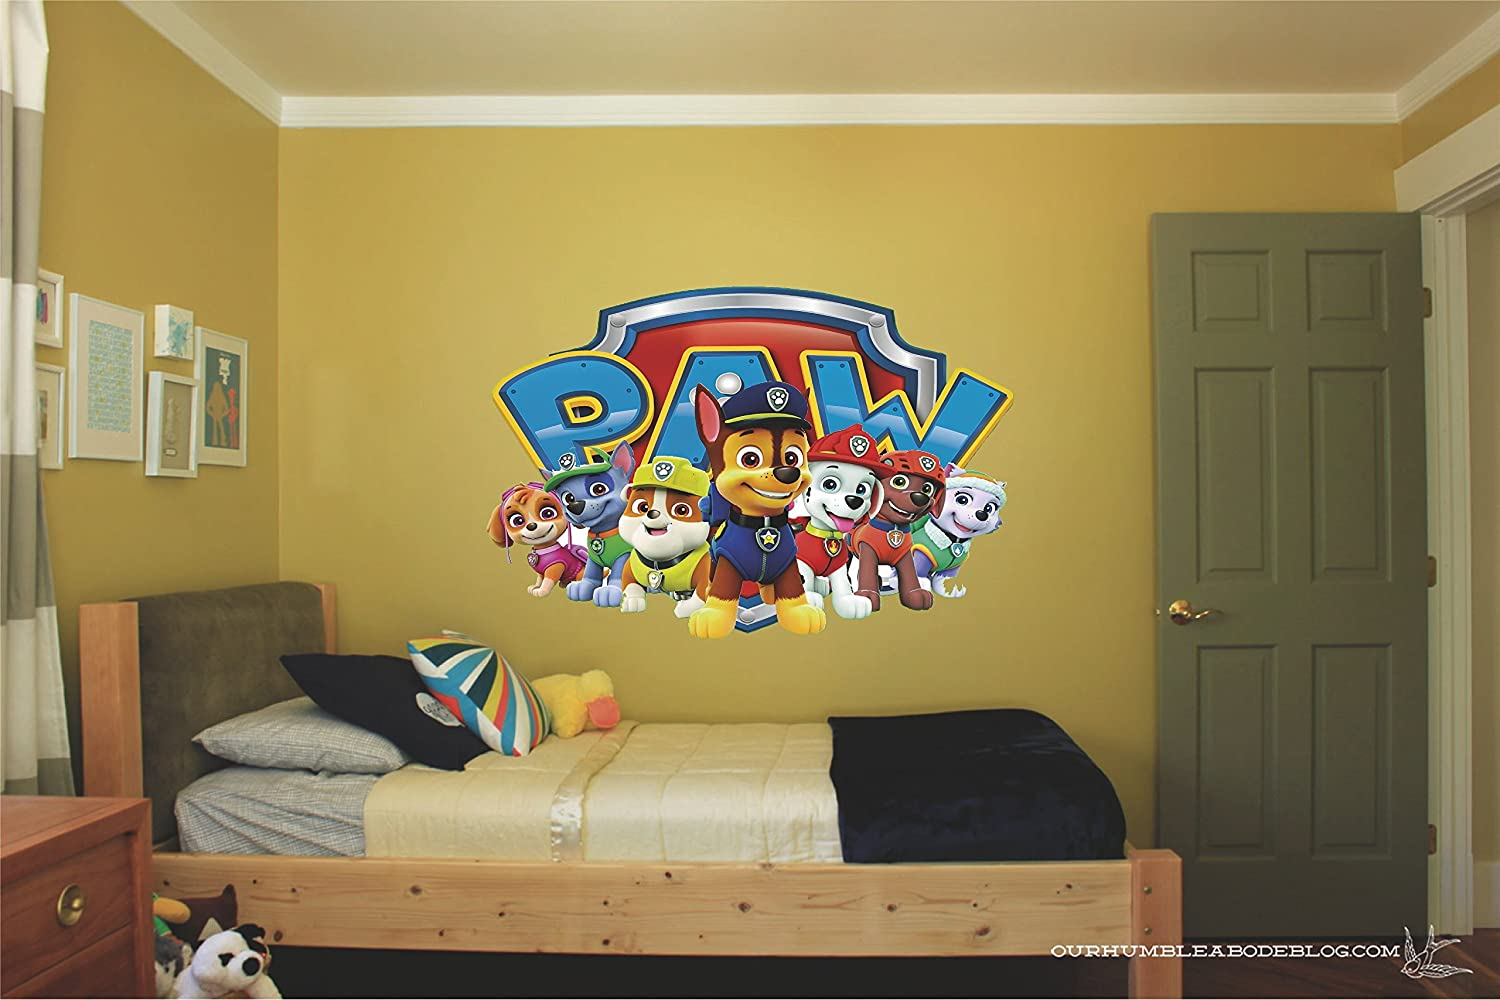 Paw patrol rescue pups Movie 3D Wall Decal Sticker 18